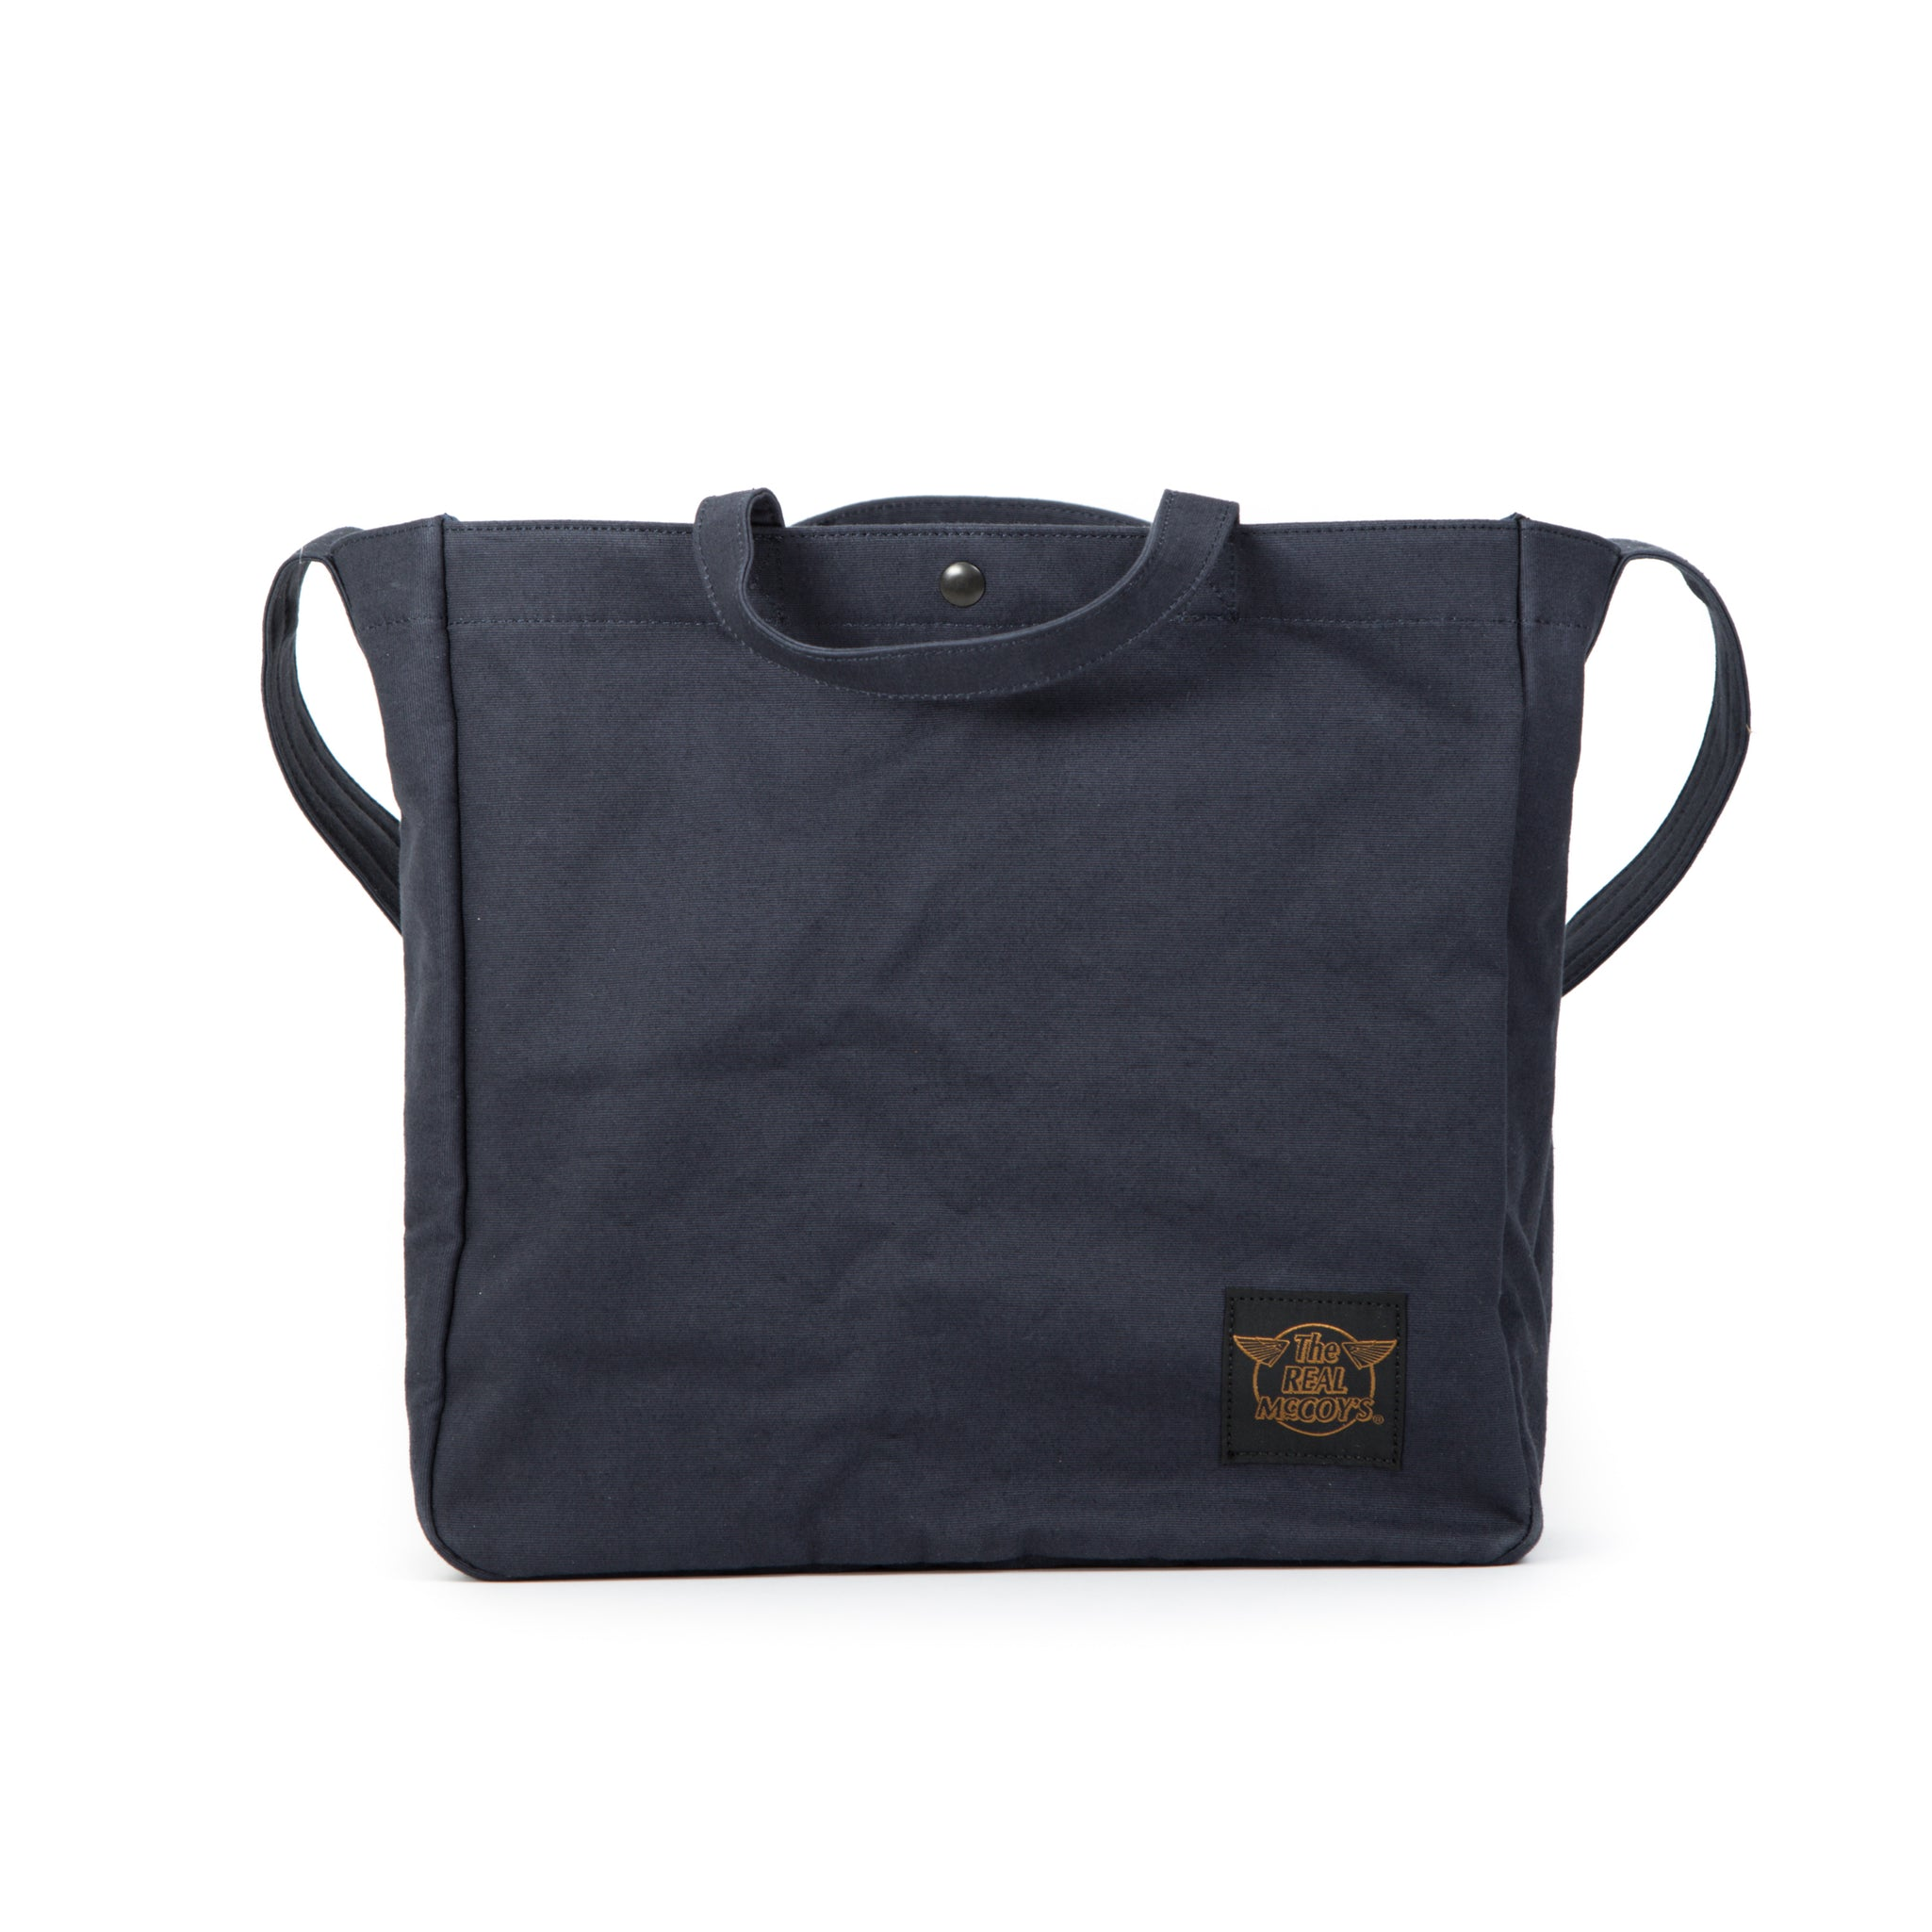 The Real McCoy's Eco Shoulder Bag (Navy Cotton Canvas)